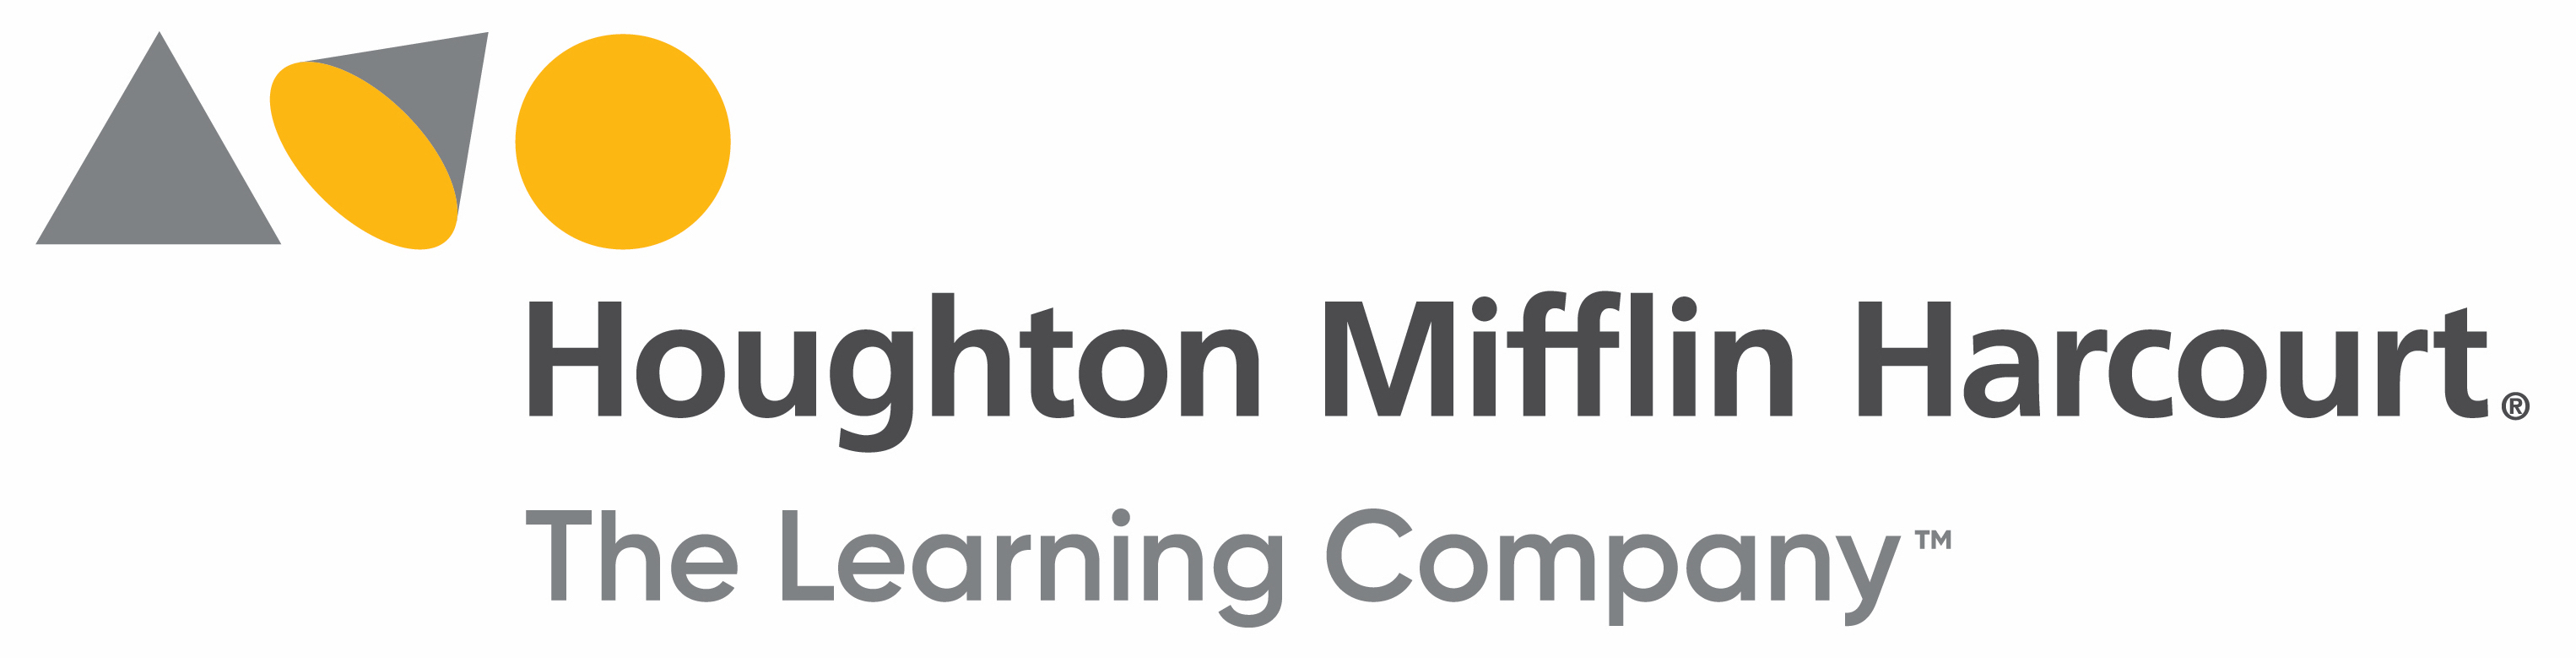 Image result for houghton mifflin harcourt logo